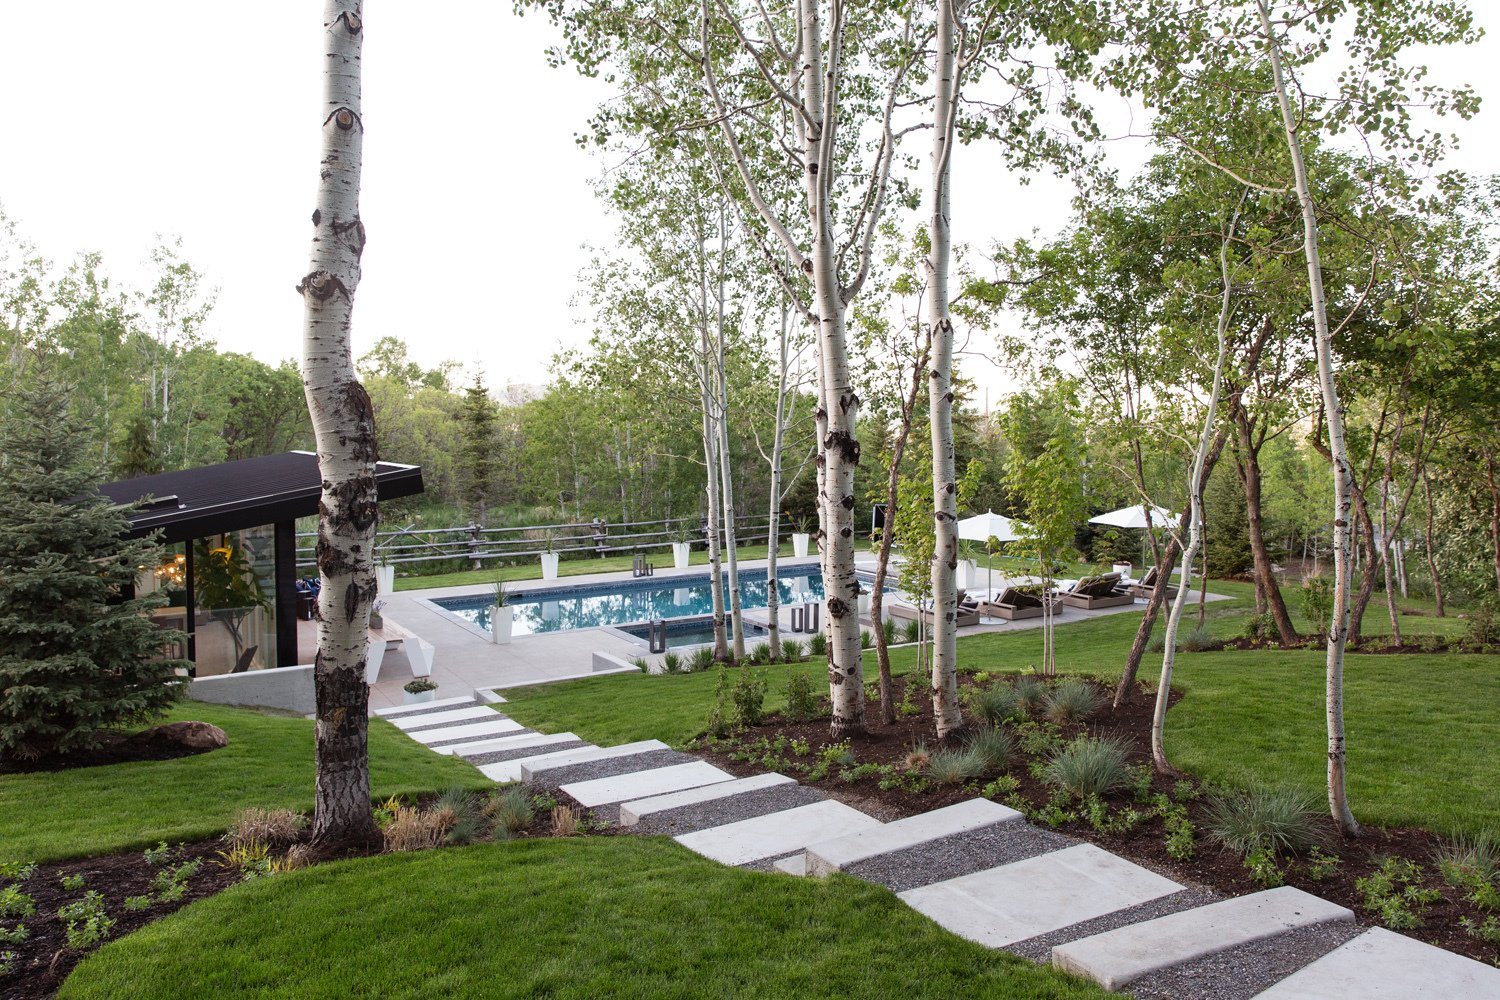 Outdoor, Walkways, Concrete Pools, Tubs, Shower, Woodland, Wood Fences, Wall, Trees, Shrubs, Swimming Pools, Tubs, Shower, Large Patio, Porch, Deck, Planters Patio, Porch, Deck, Horizontal Fences, Wall, Back Yard, Grass, and Concrete Patio, Porch, Deck The modern pool house emphasizes indoor/outdoor living. Landscaping was done by Eschenfelder Landscape Design.  Photo 2 of 16 in This Can-Do Pool House Cleverly Goes From Private to Party Mode from Modern Mountain Pool House